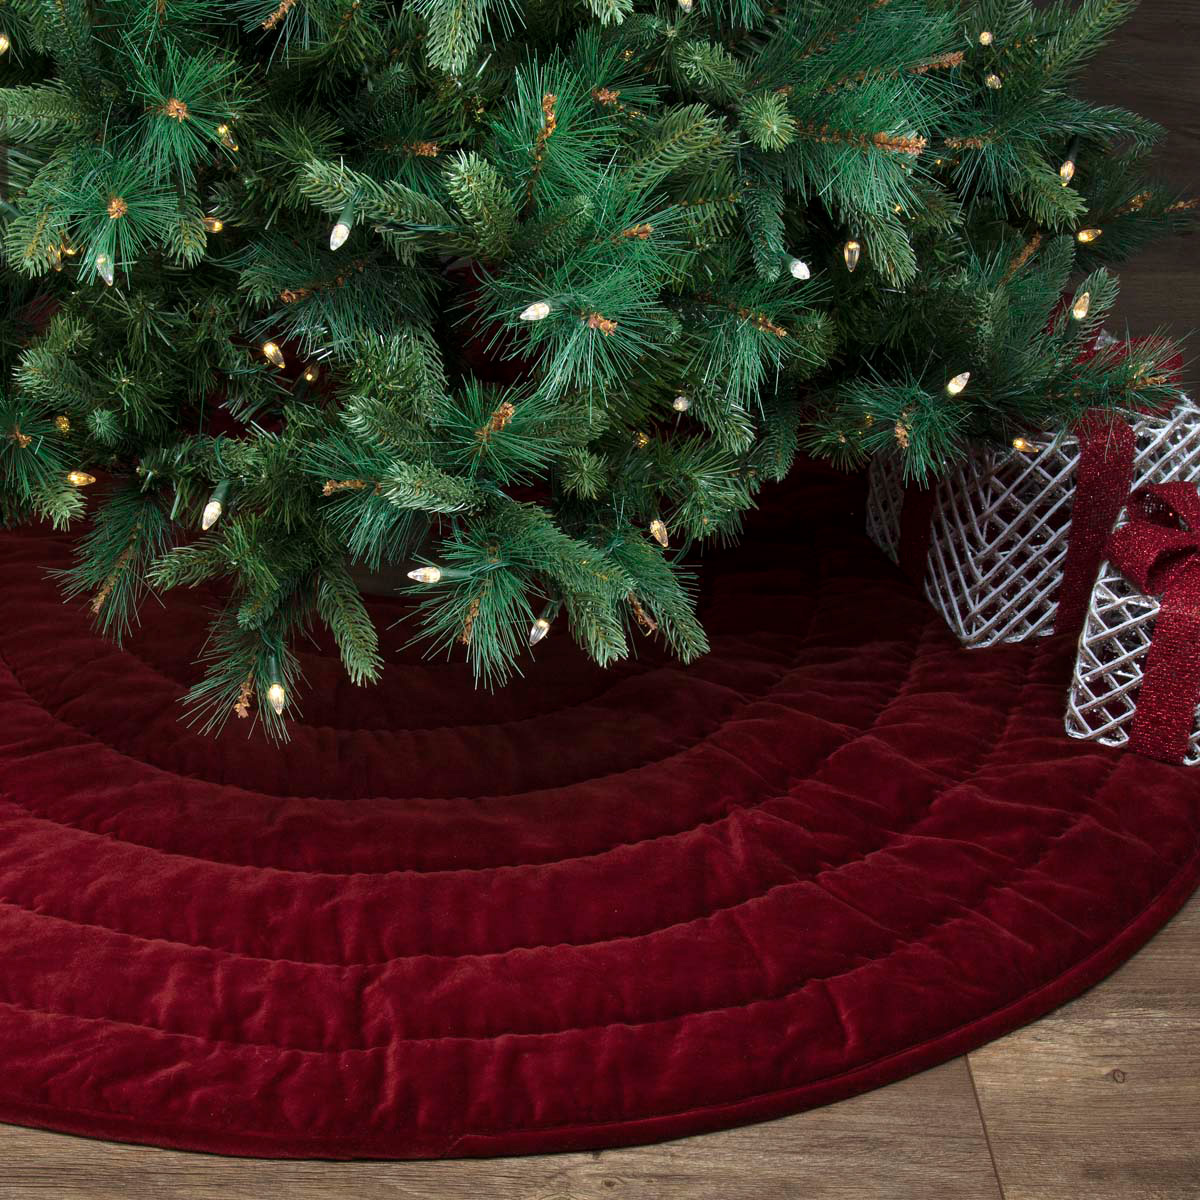 Red Velvet Christmas Tree Skirt, by VHC Brands. - The Weed Patch